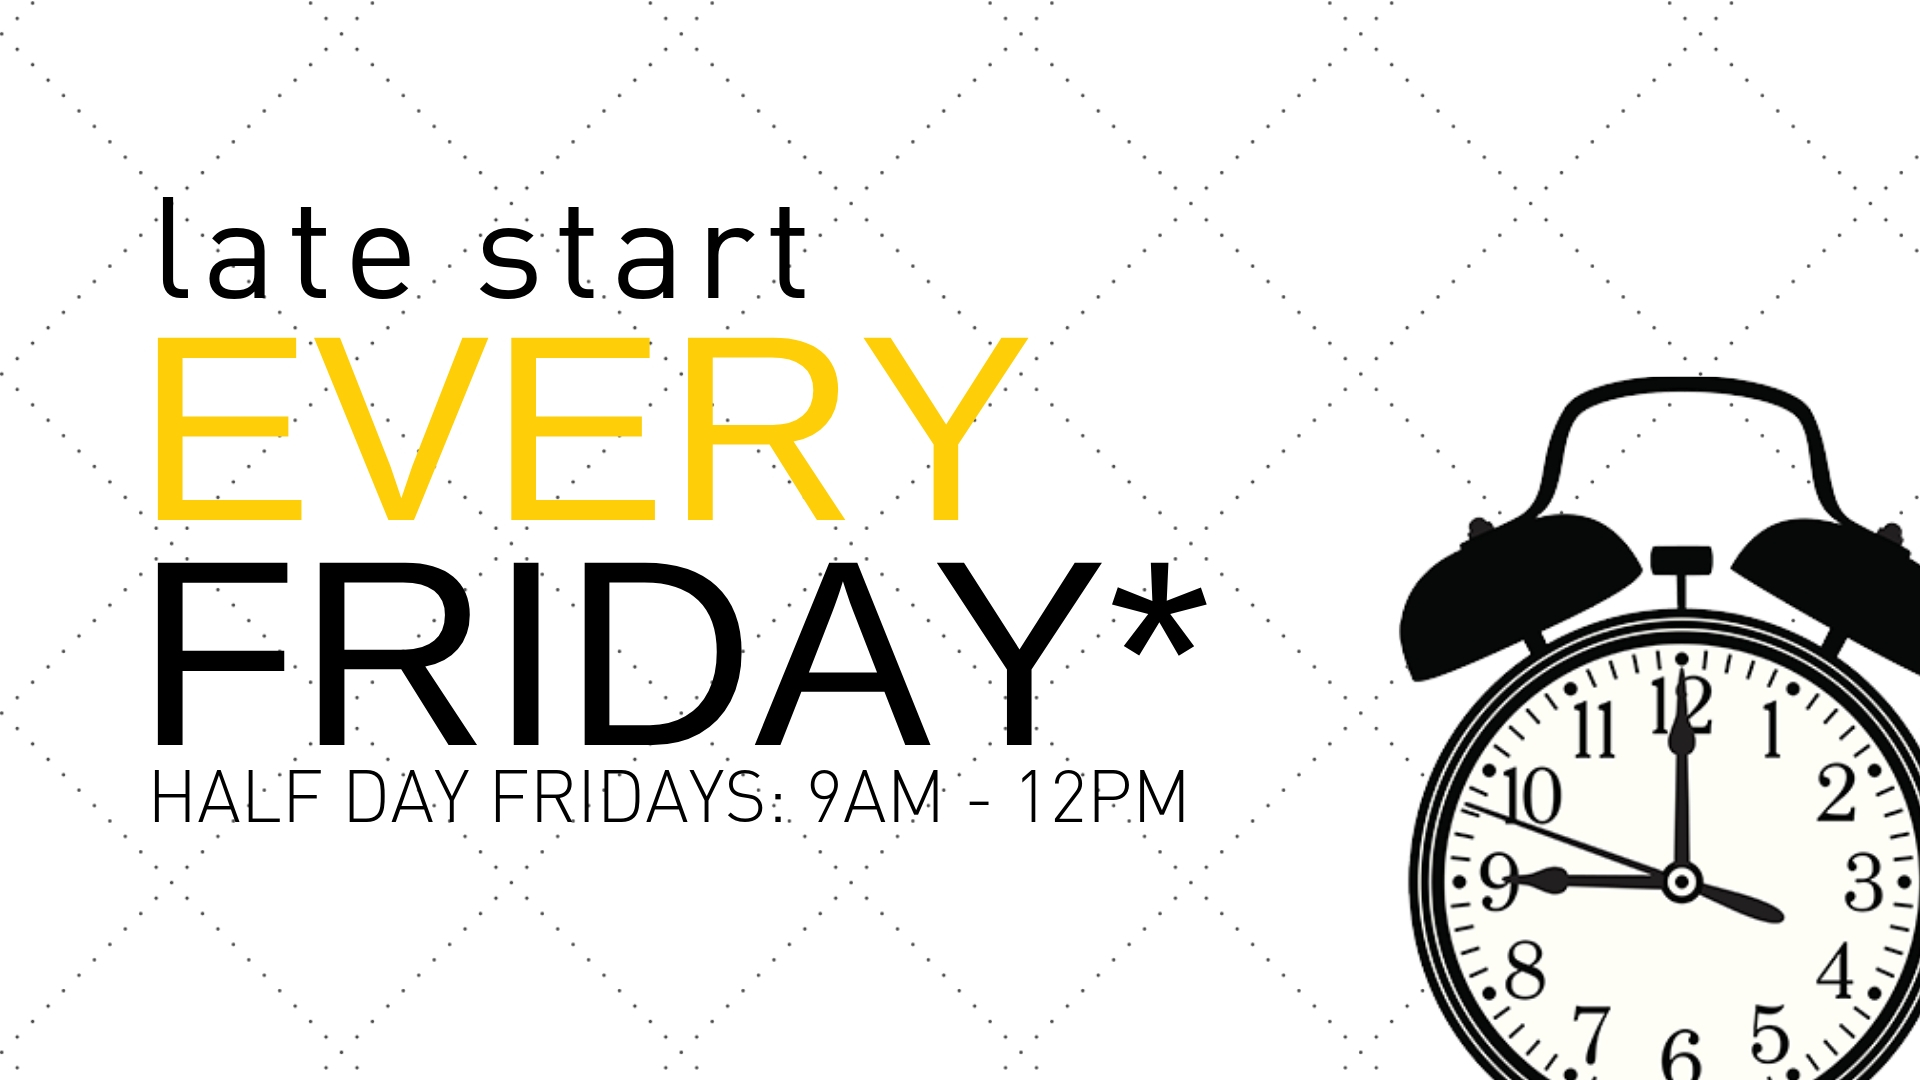 Every Friday is a Late Start at 9am  |  Half day Fridays are from 9am - 12pm